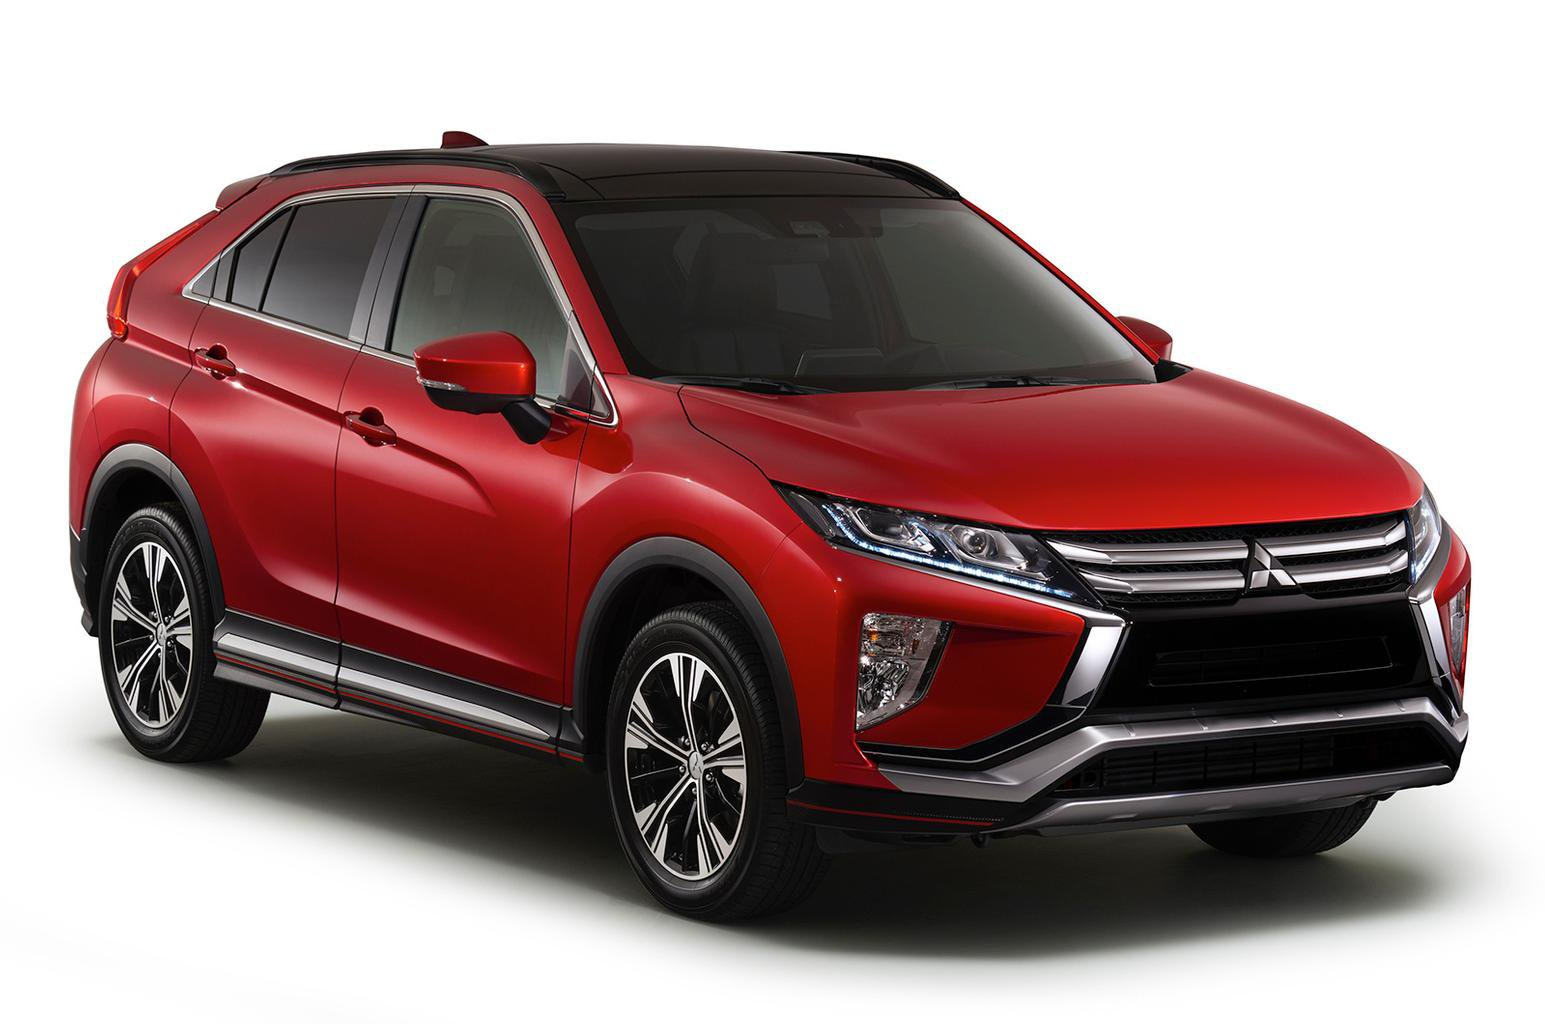 New Mitsubishi Eclipse Cross to take on Nissan Qashqai